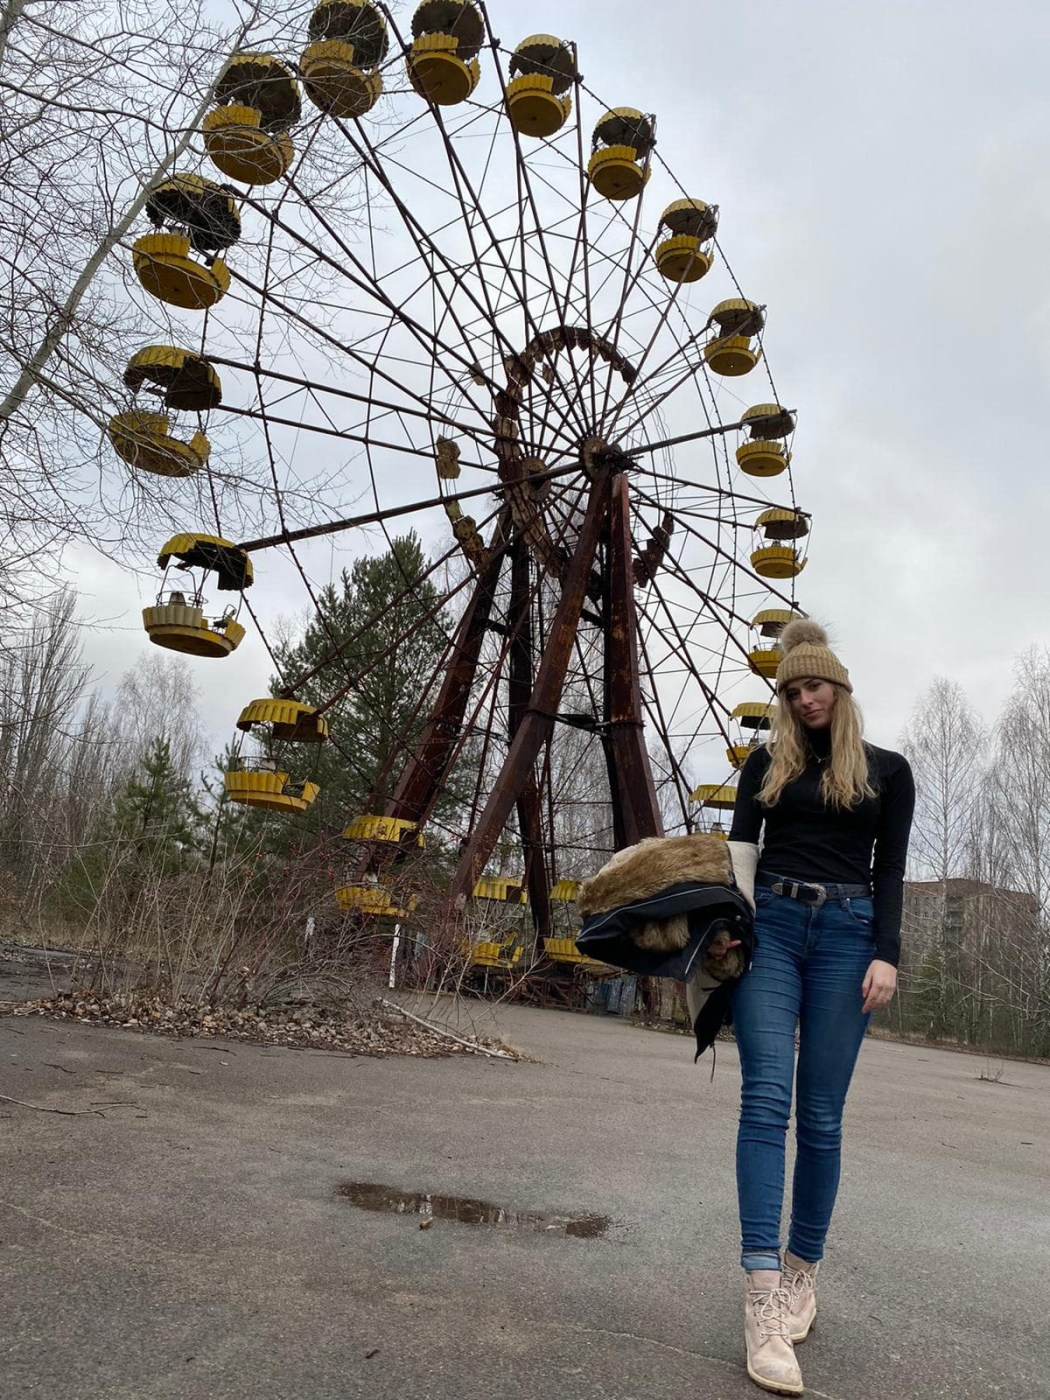 Chernobyl Ferris Wheel, Chernobyl in Winter